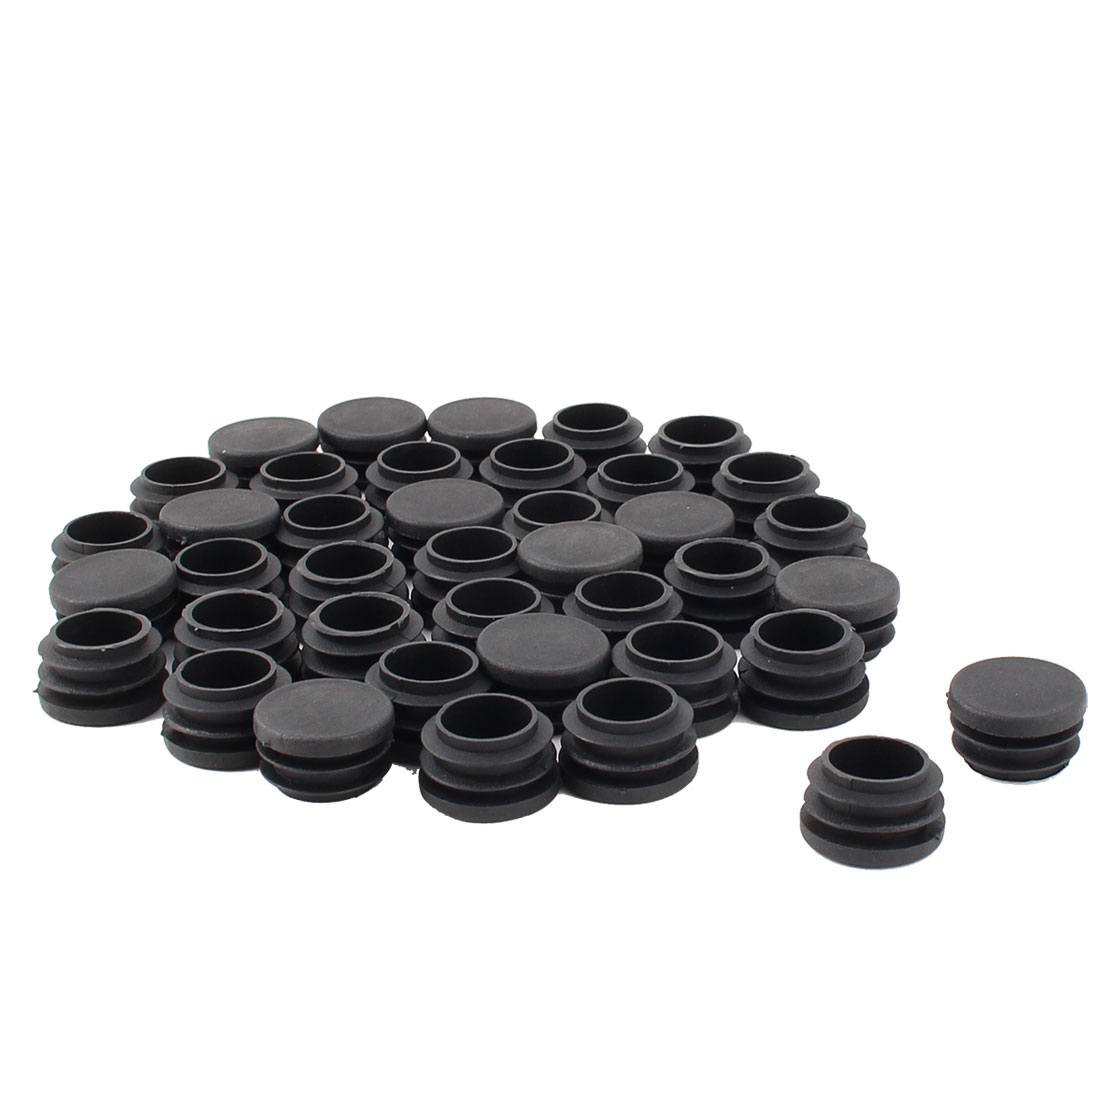 Furniture Table Chair Legs Plastic Flat Base Round Tube Pipe Insert Cap Cover Black 28mm Dia 40pcs